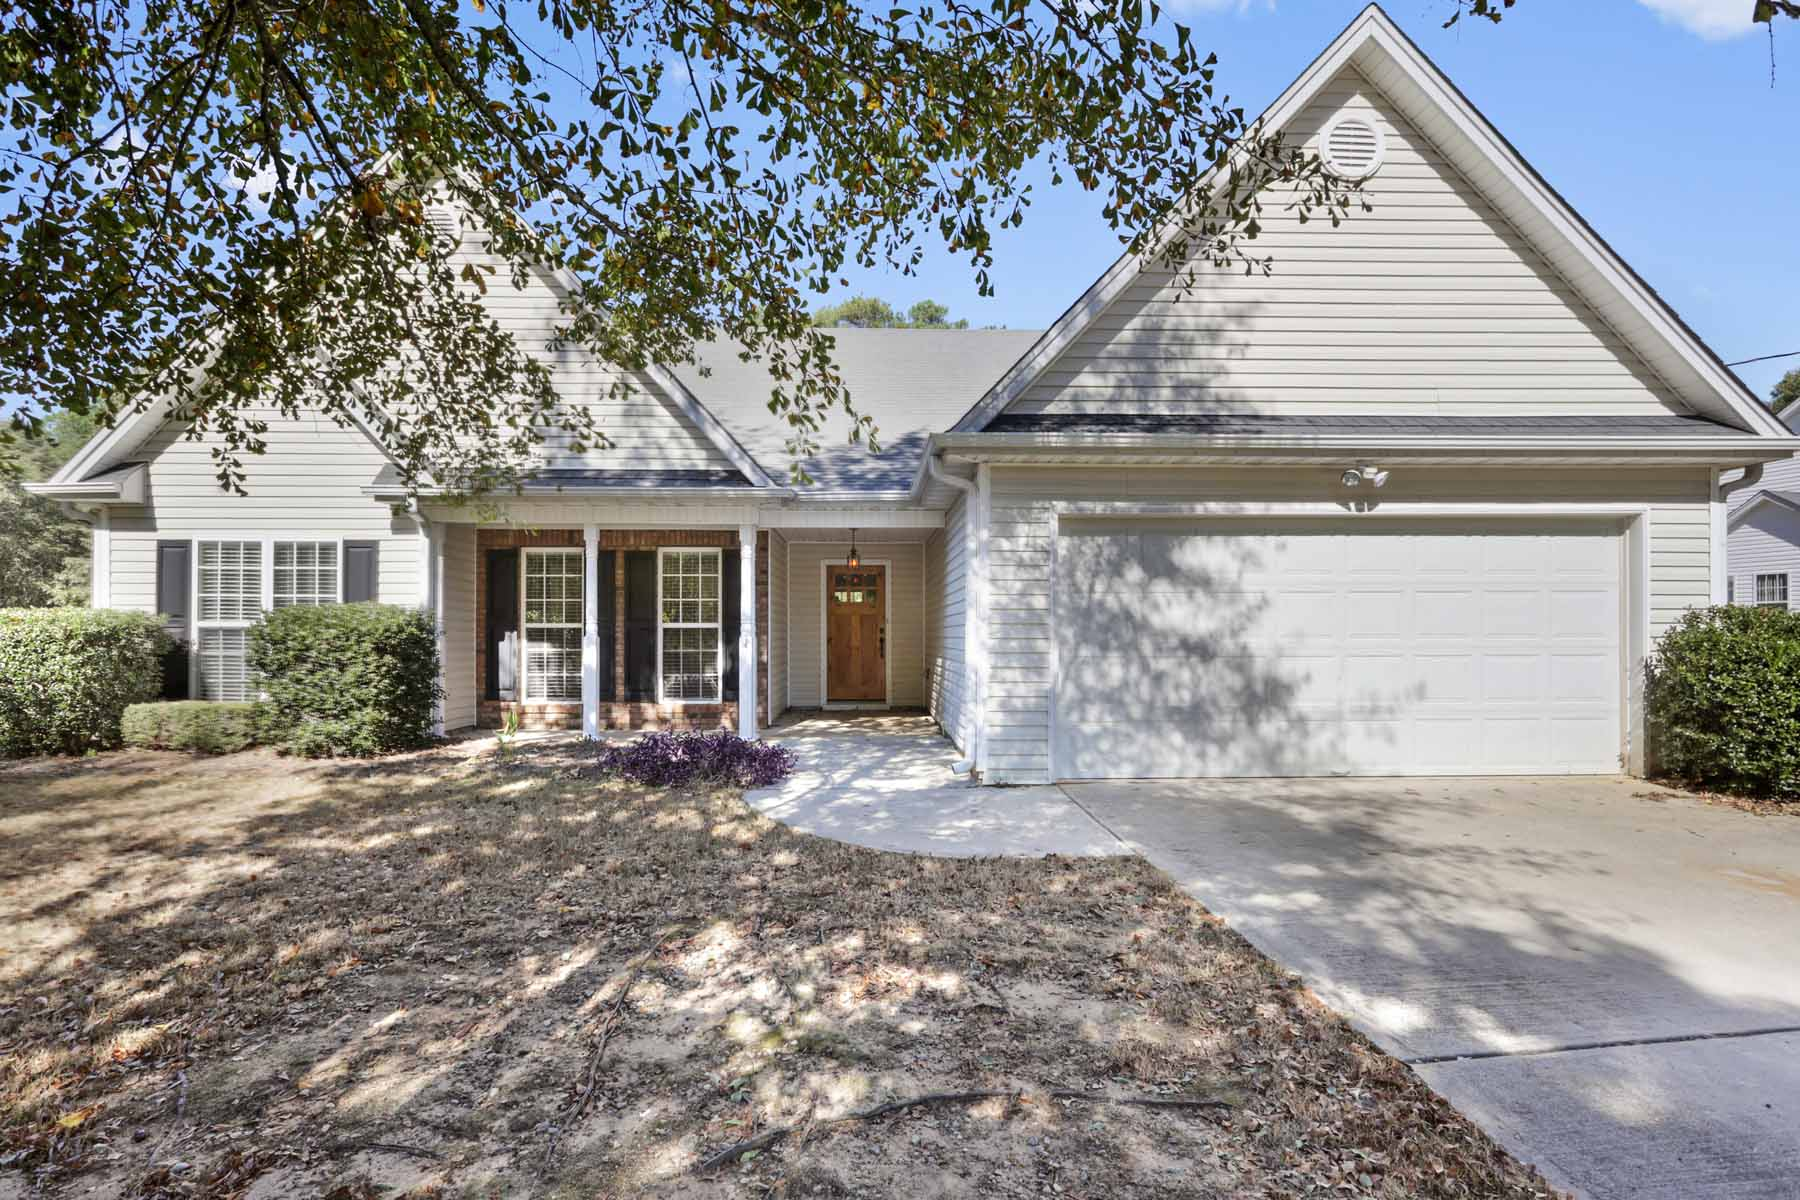 Single Family Home for Sale at Charming Ranch On Large Lot 561 Old Loganville Road Loganville, Georgia, 30052 United States